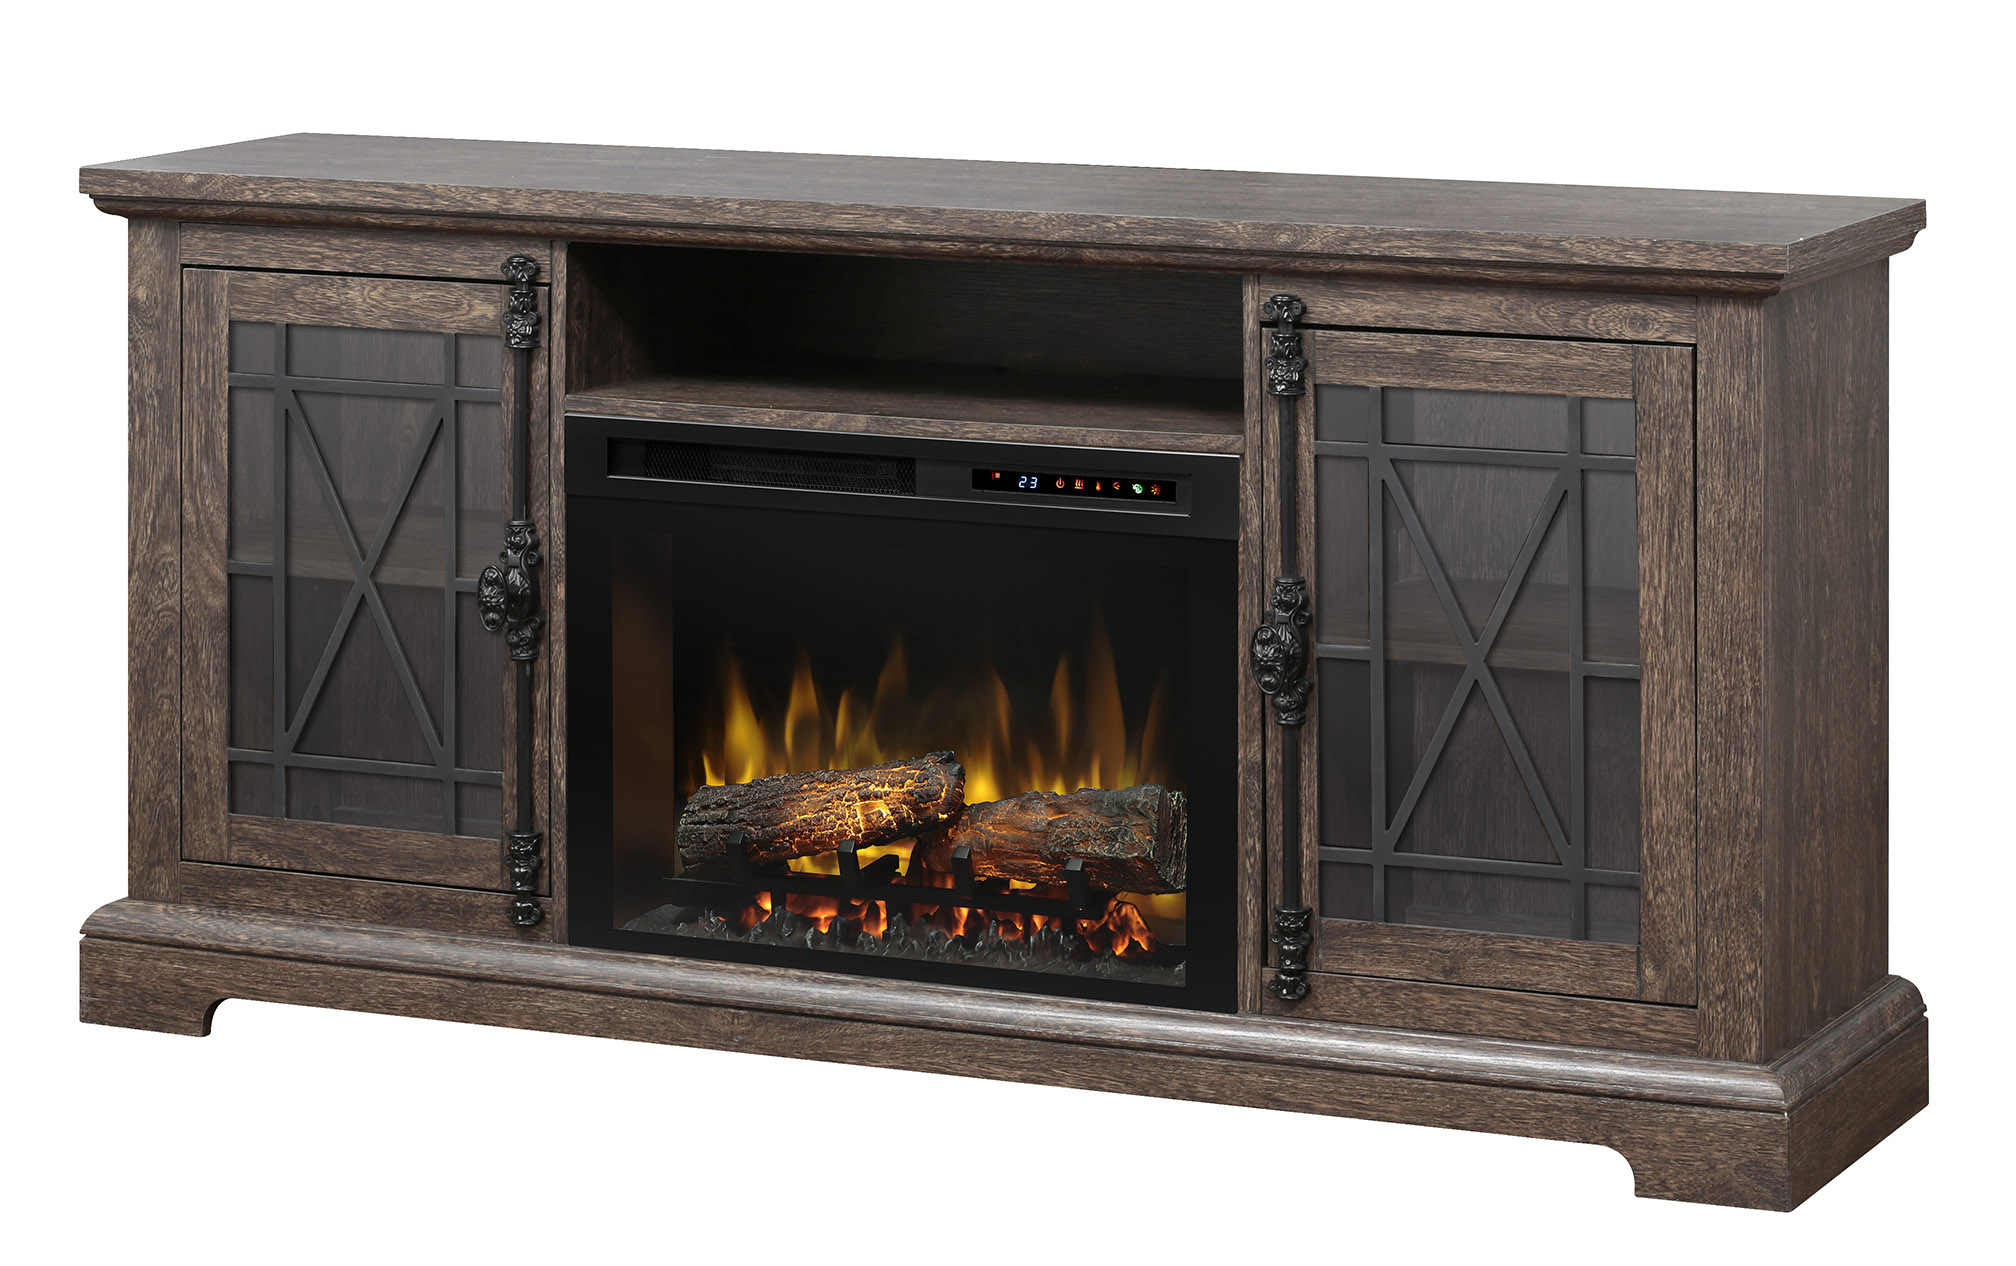 Dimplex Natalie Media Console Electric Fireplace Gds26g8